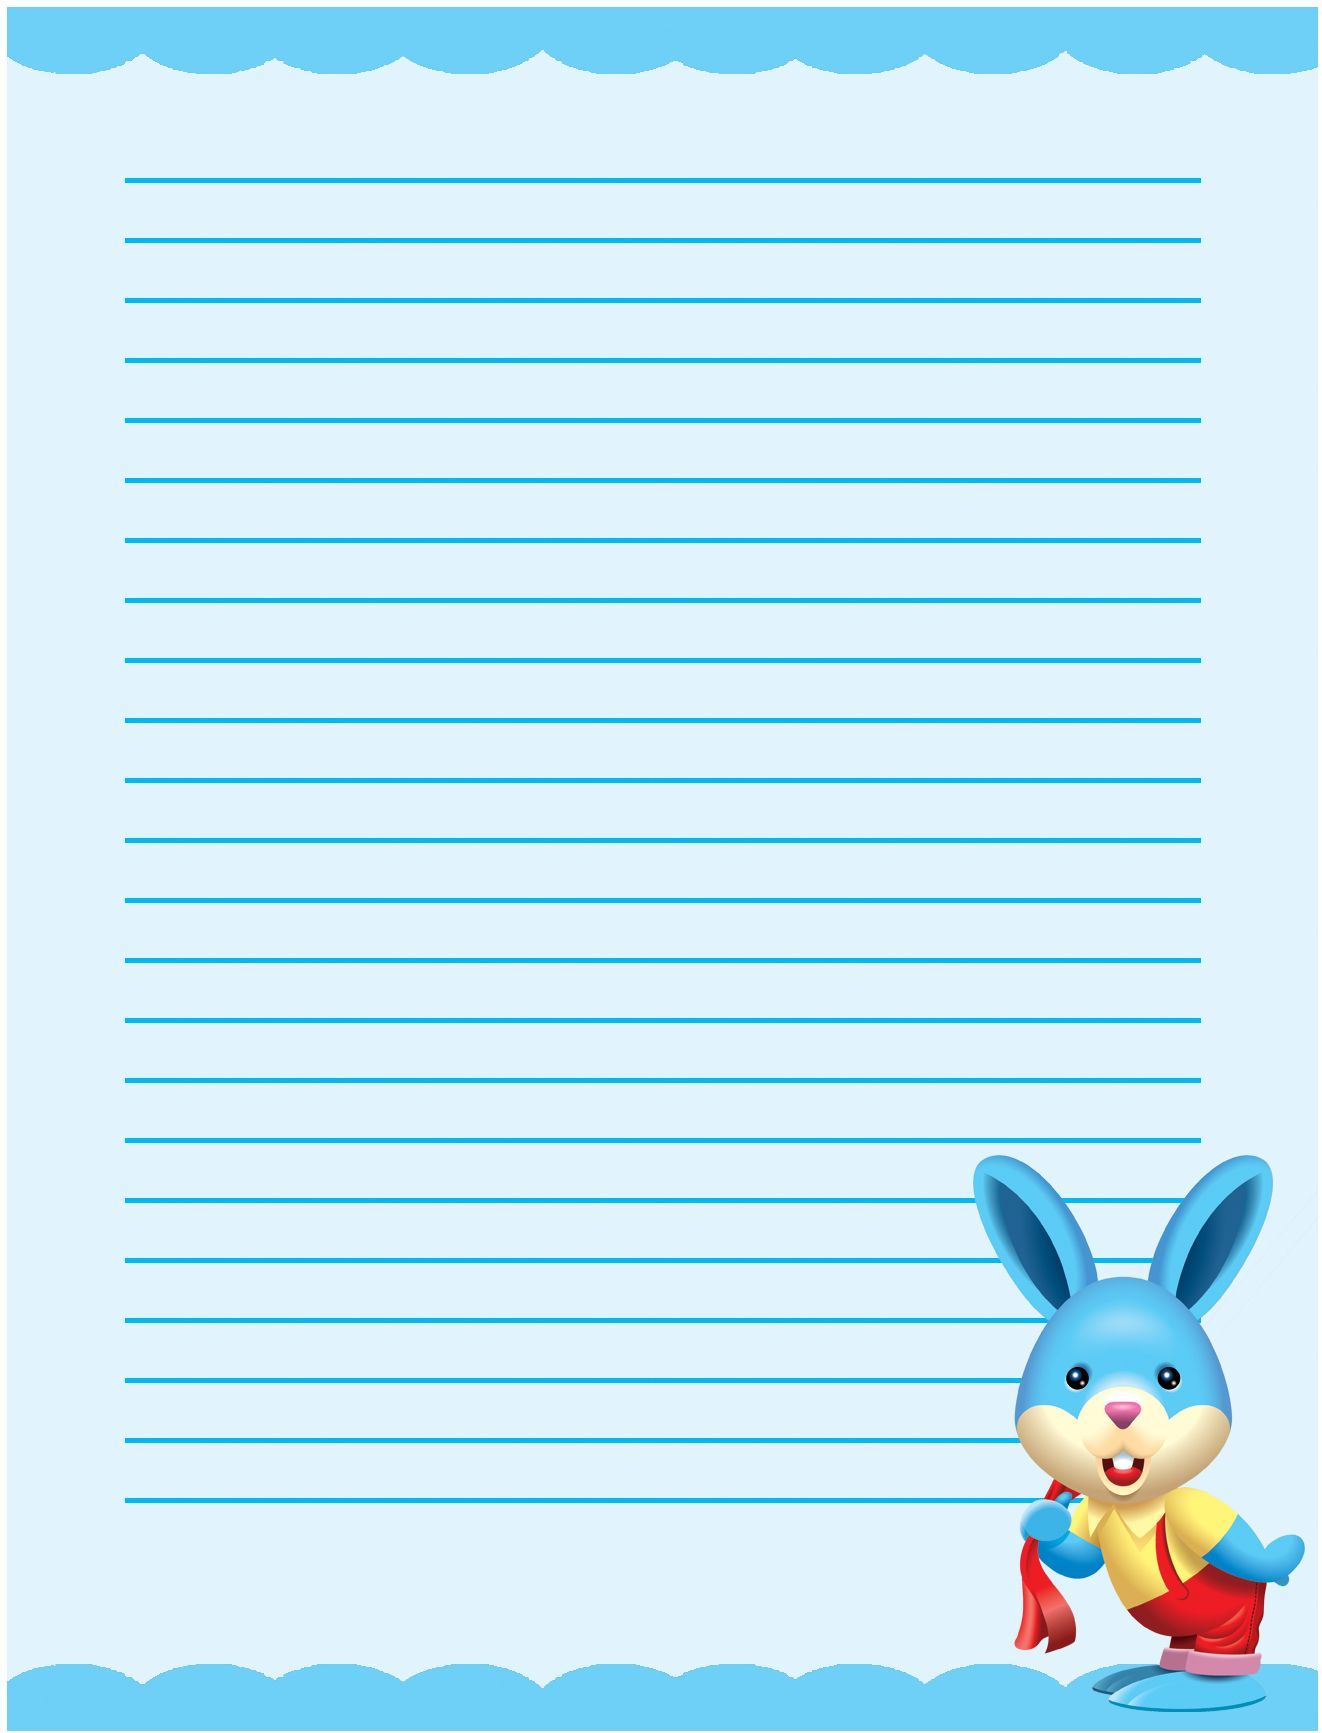 Cute bunny single lined writing paper template Briefpapier